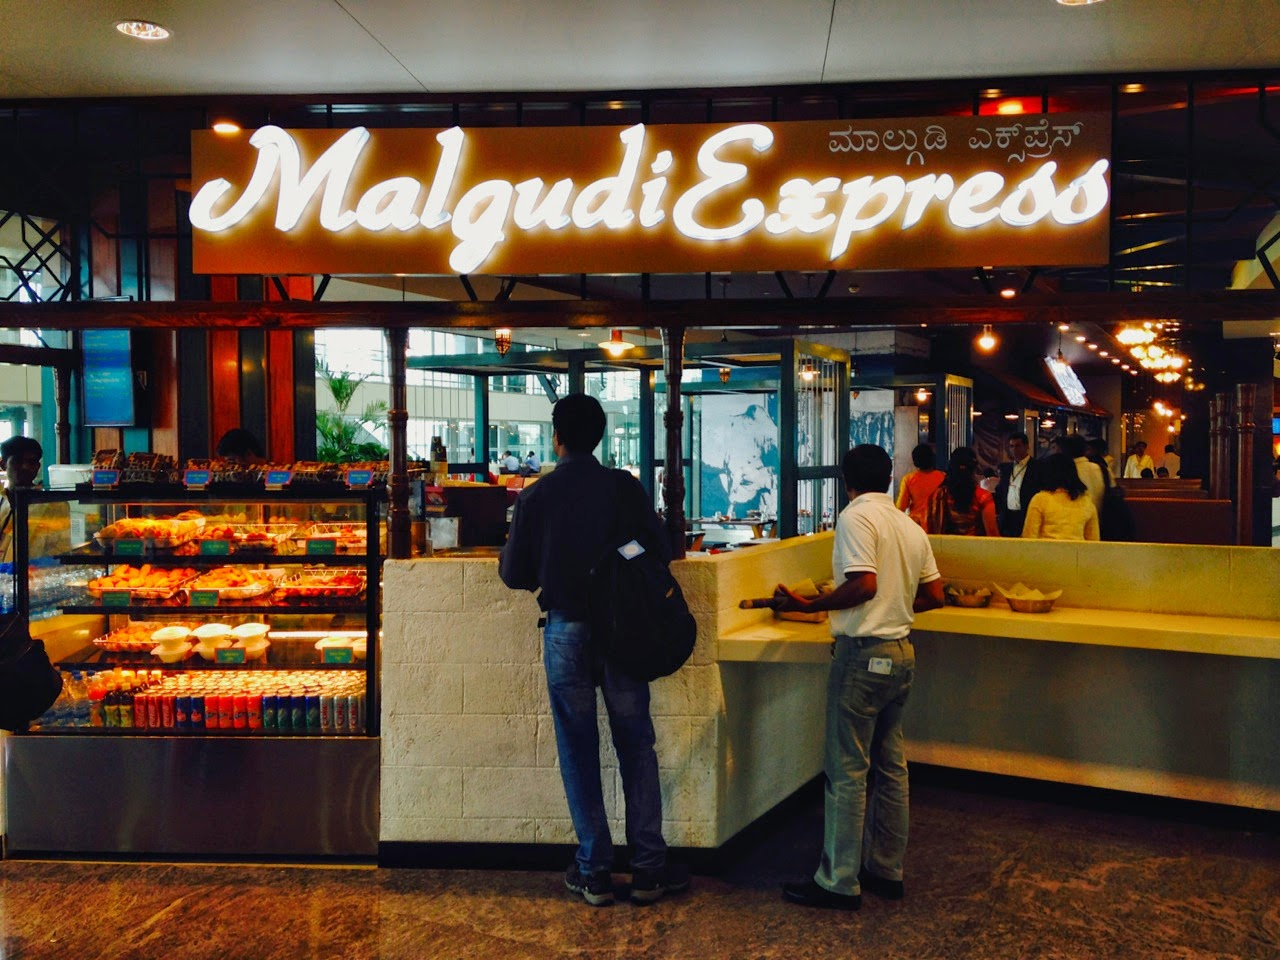 Fast food outlet in Bangalore.